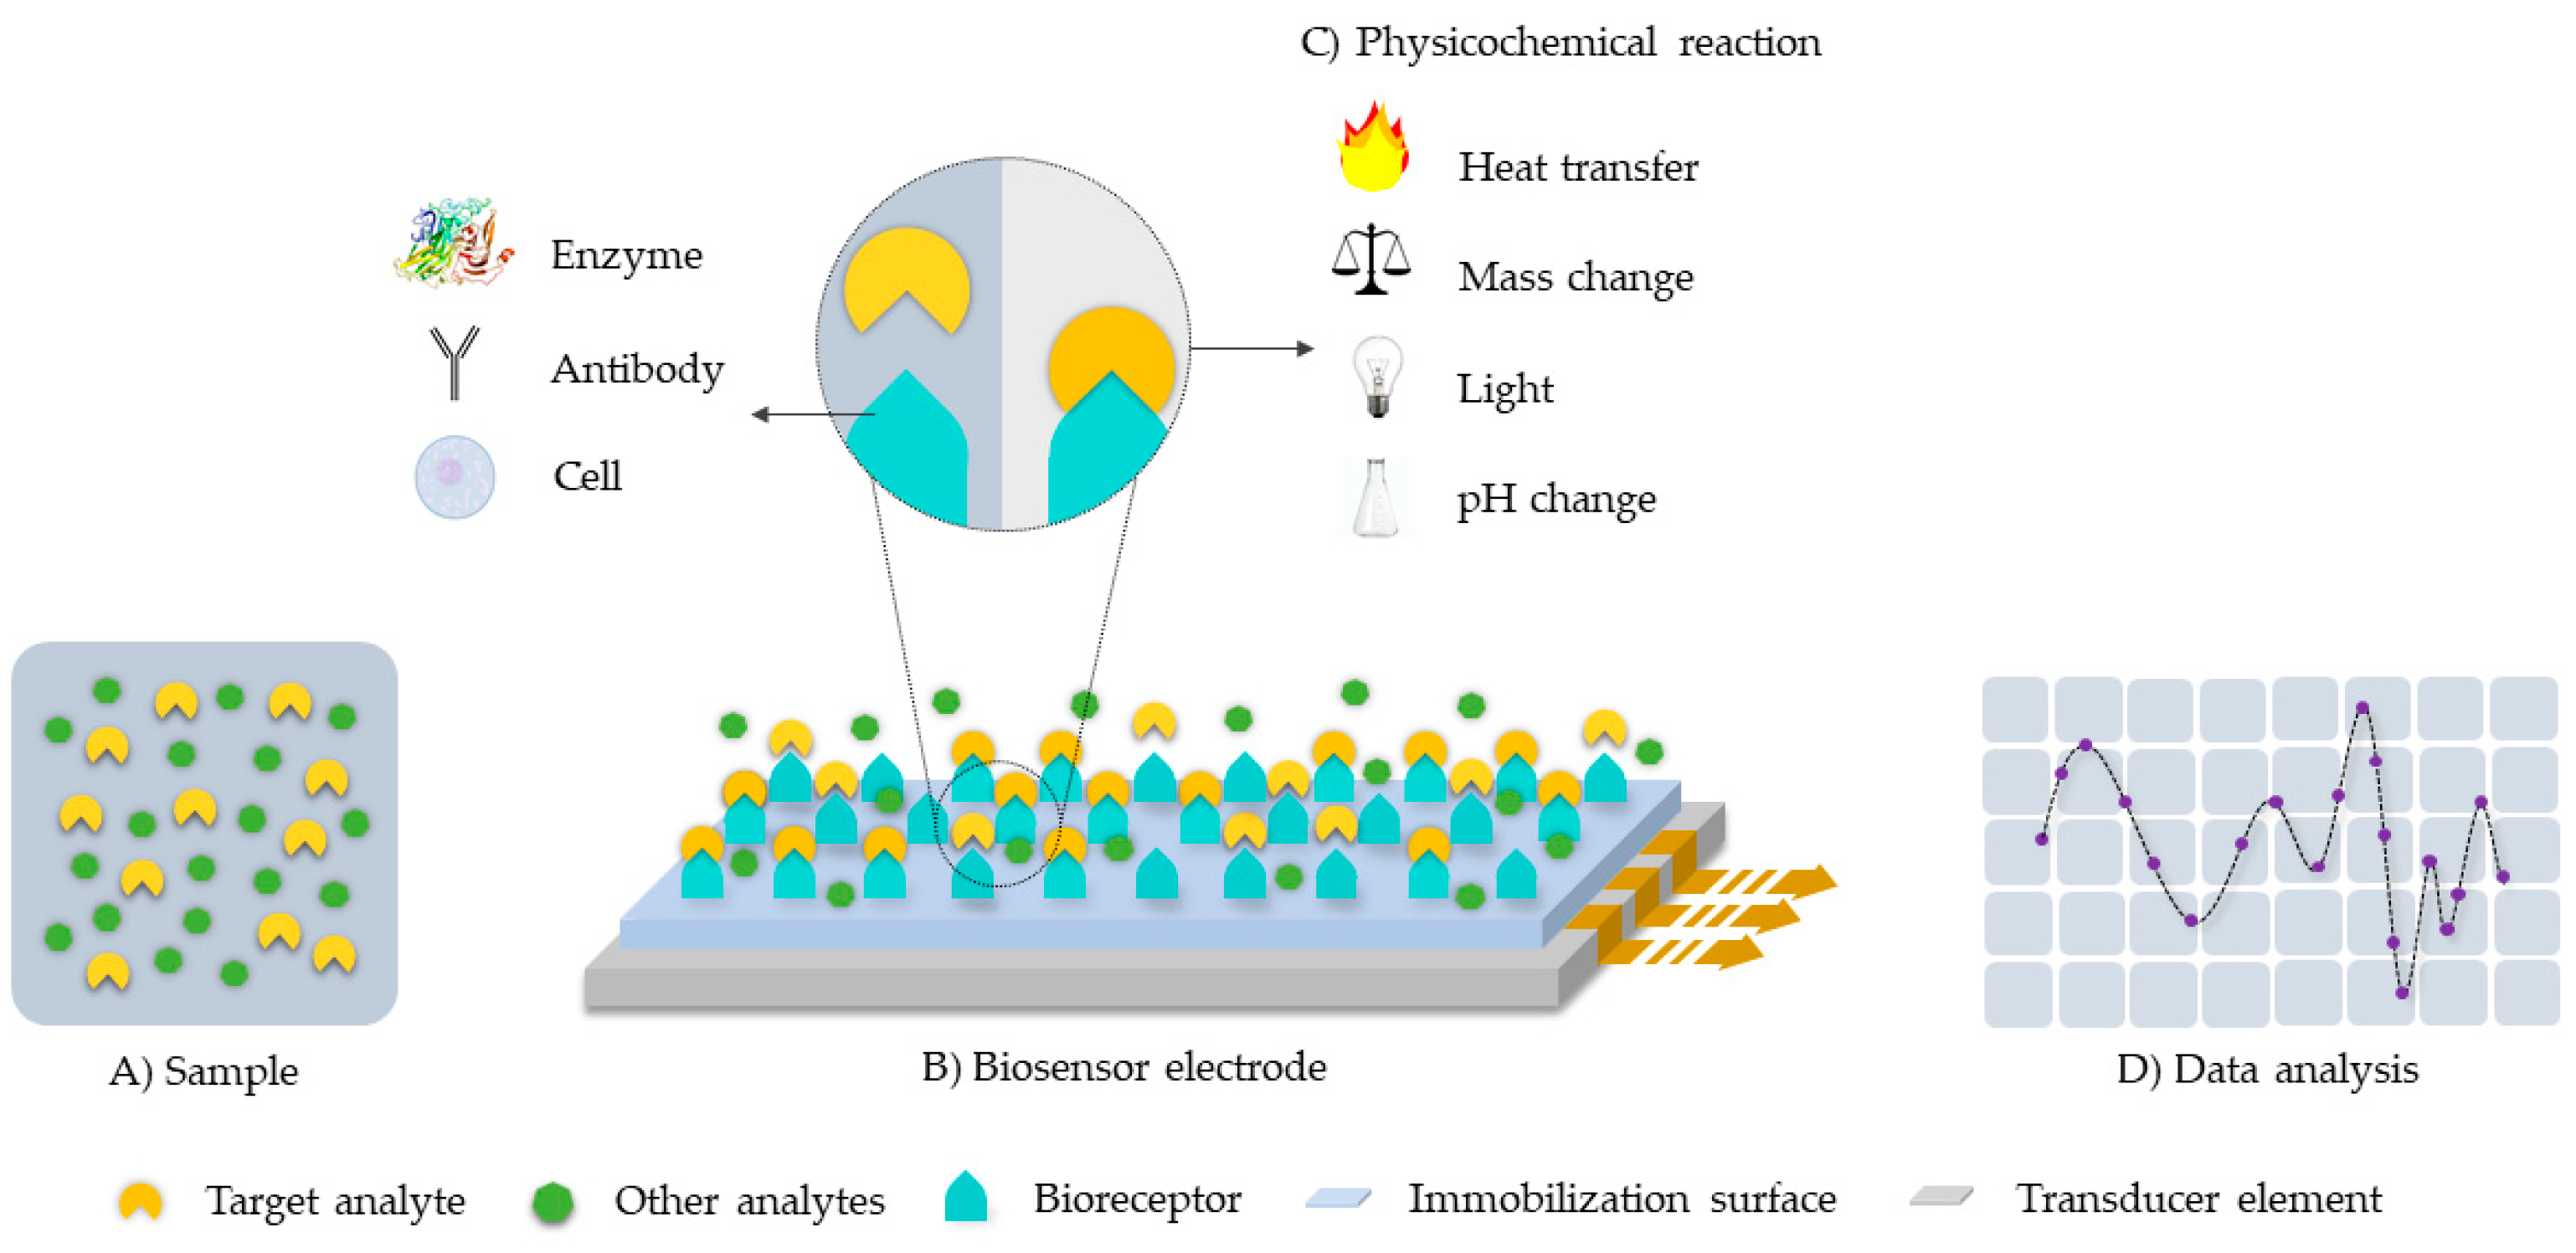 Biosensors | Free Full-Text | Enzyme-Based Electrochemical Biosensors for  Microfluidic Platforms to Detect Pharmaceutical Residues in Wastewater |  HTML